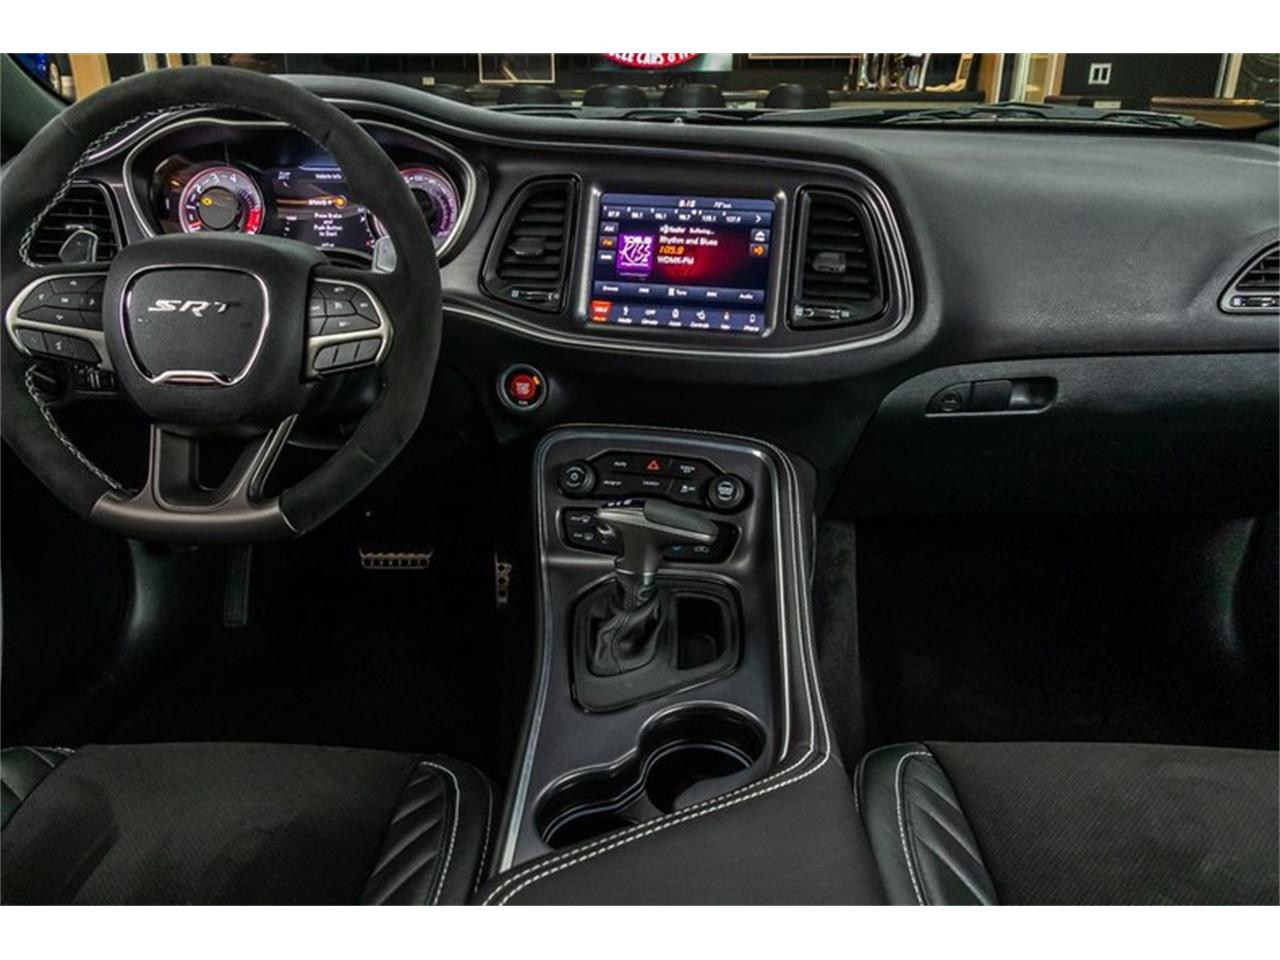 2018 Dodge Challenger (CC-1419559) for sale in Plymouth, Michigan